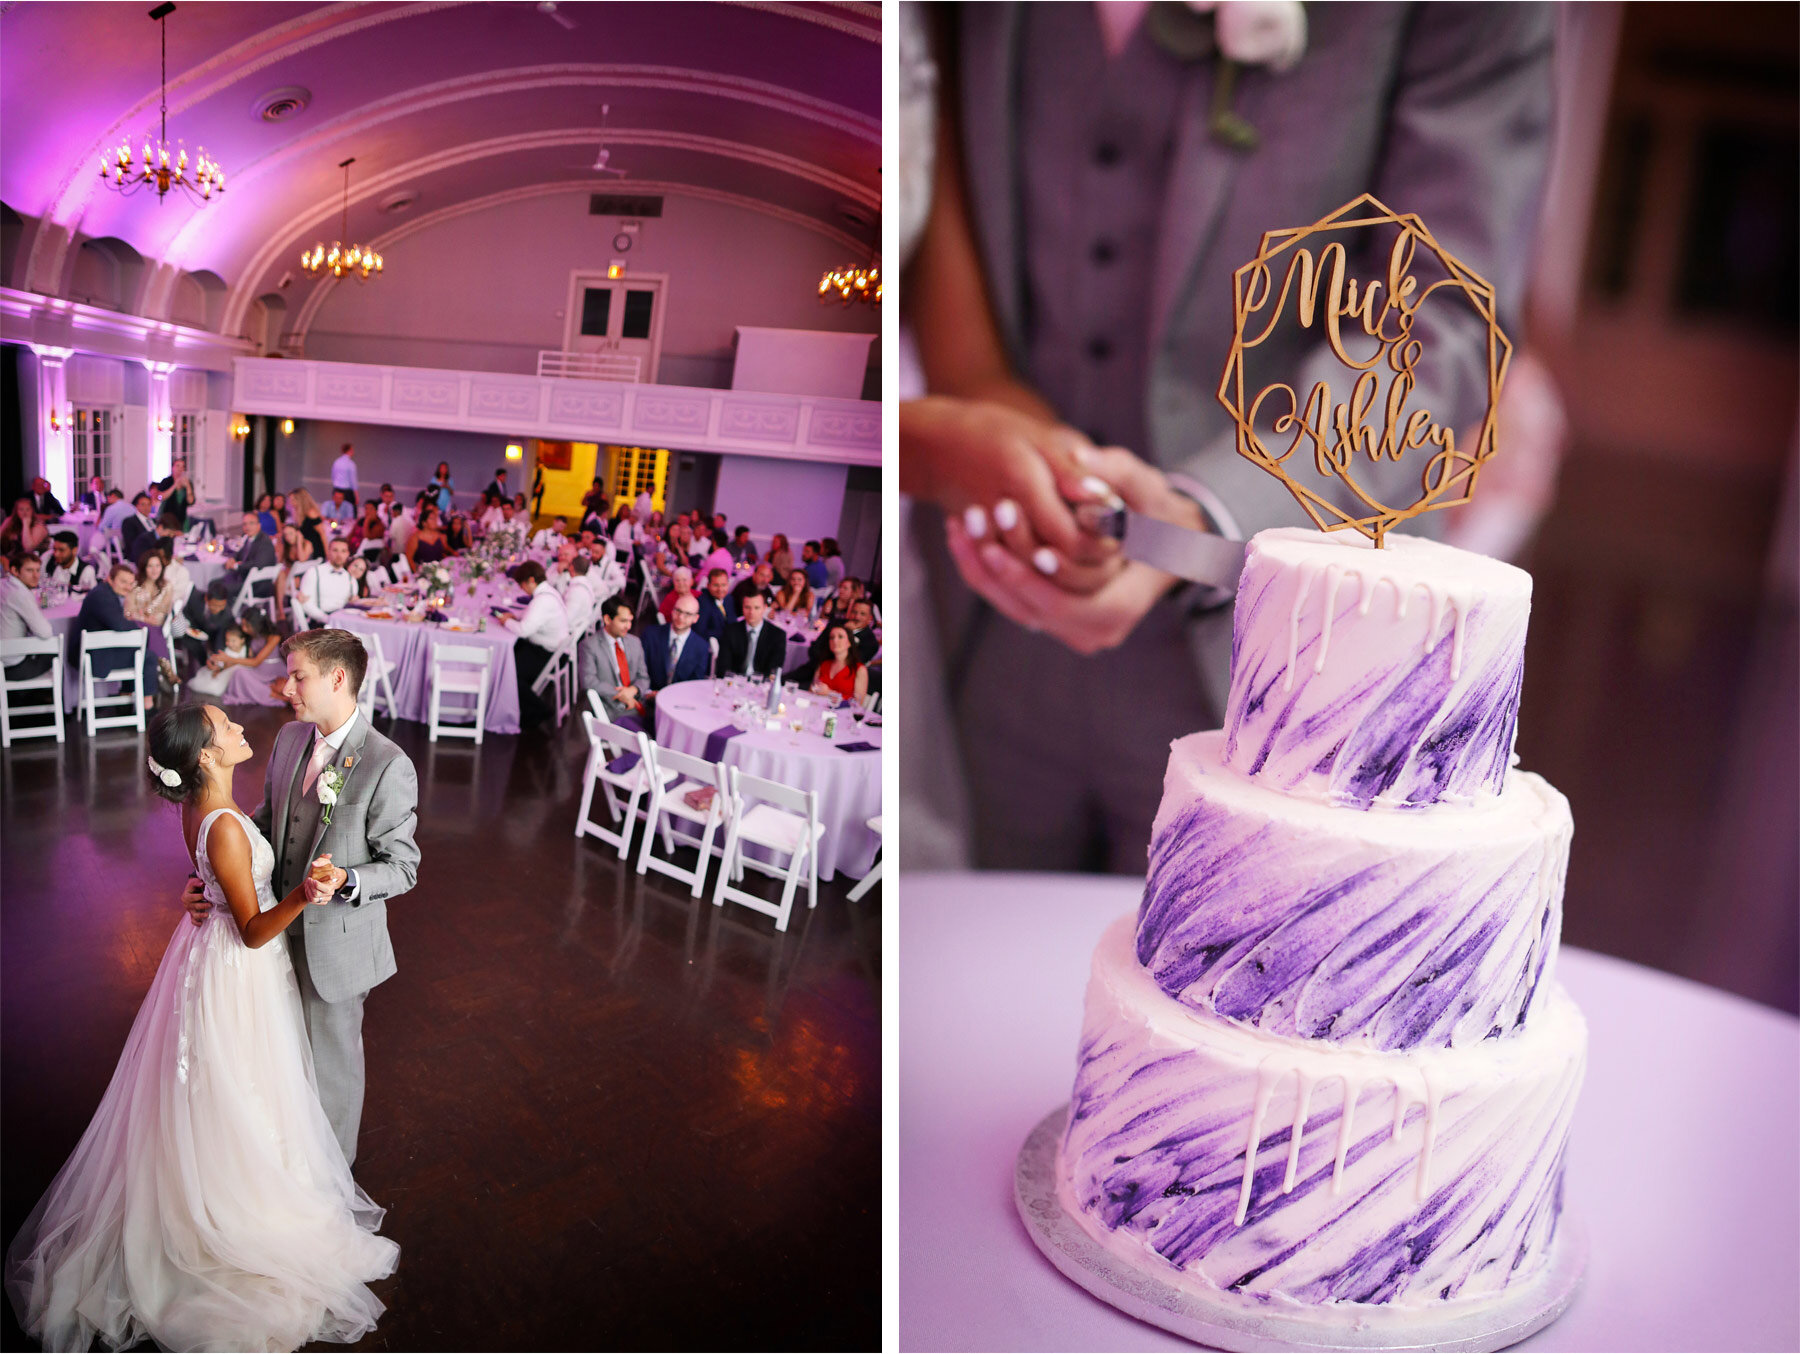 23-Wedding-by-Andrew-Vick-Photography-Chicago-Illinois-Reception-Womans-Club-of-Evanston-Dance-Cake-Ashley-and-Nicholas.jpg